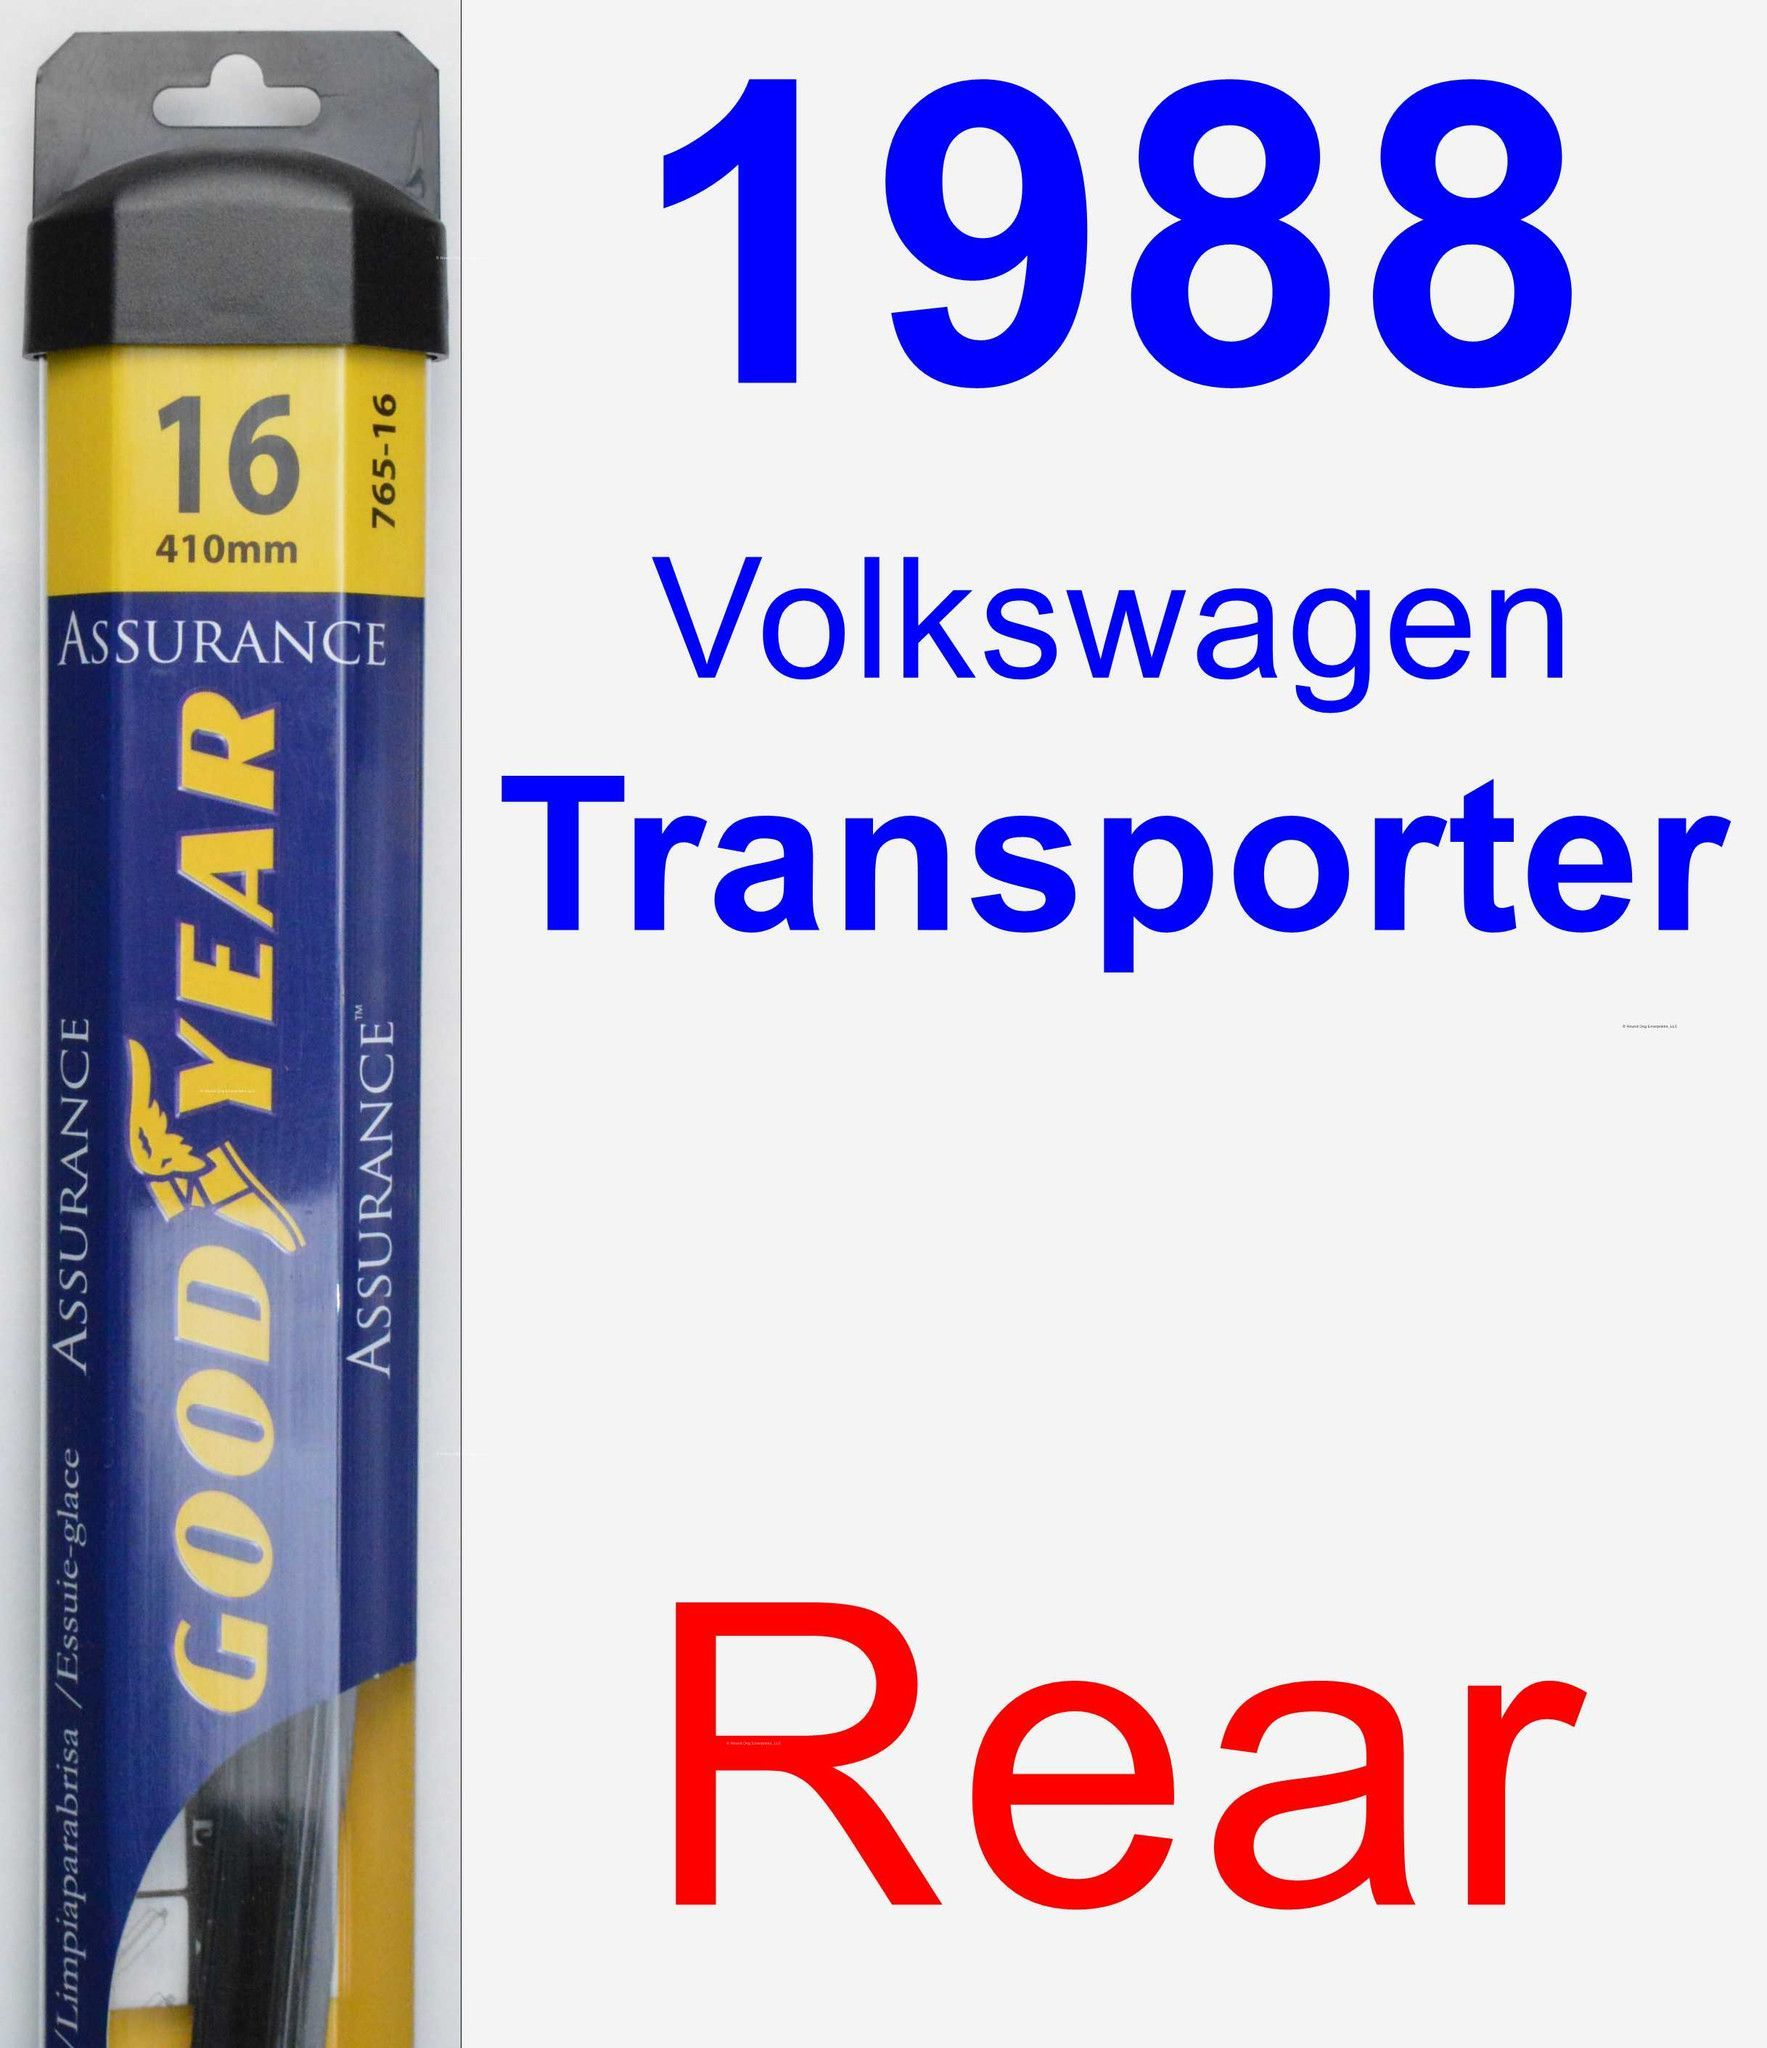 Rear Wiper Blade for 1988 Volkswagen Transporter - Assurance